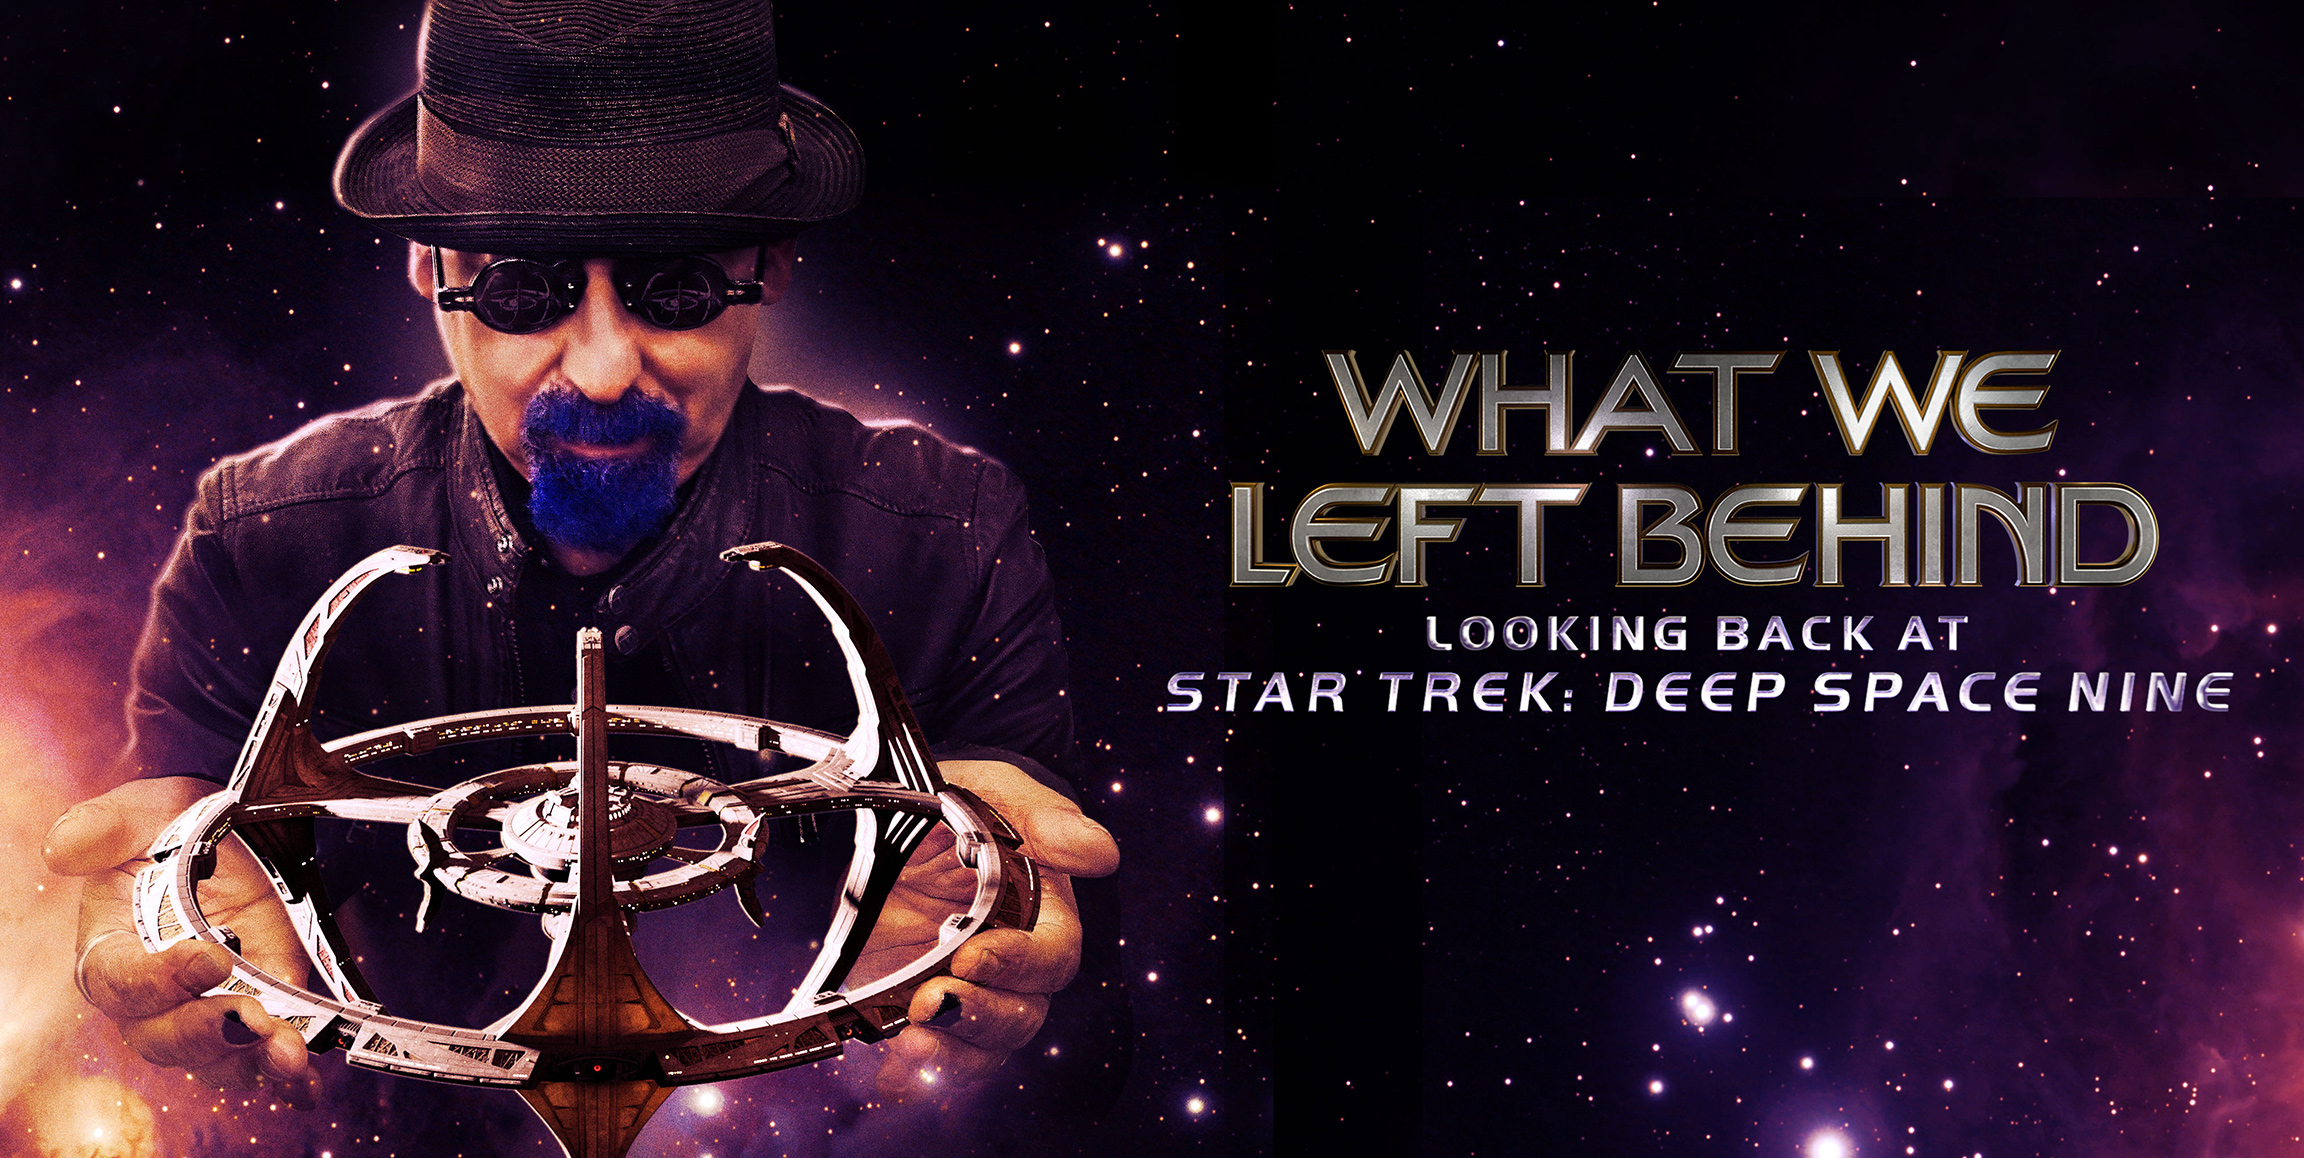 WHAT WE LEFT BEHIND: LOOKING BACK AT STAR TREK: DEEP SPACE NINE Lands in Movie Theaters Nationwide For One Night Only on May 13